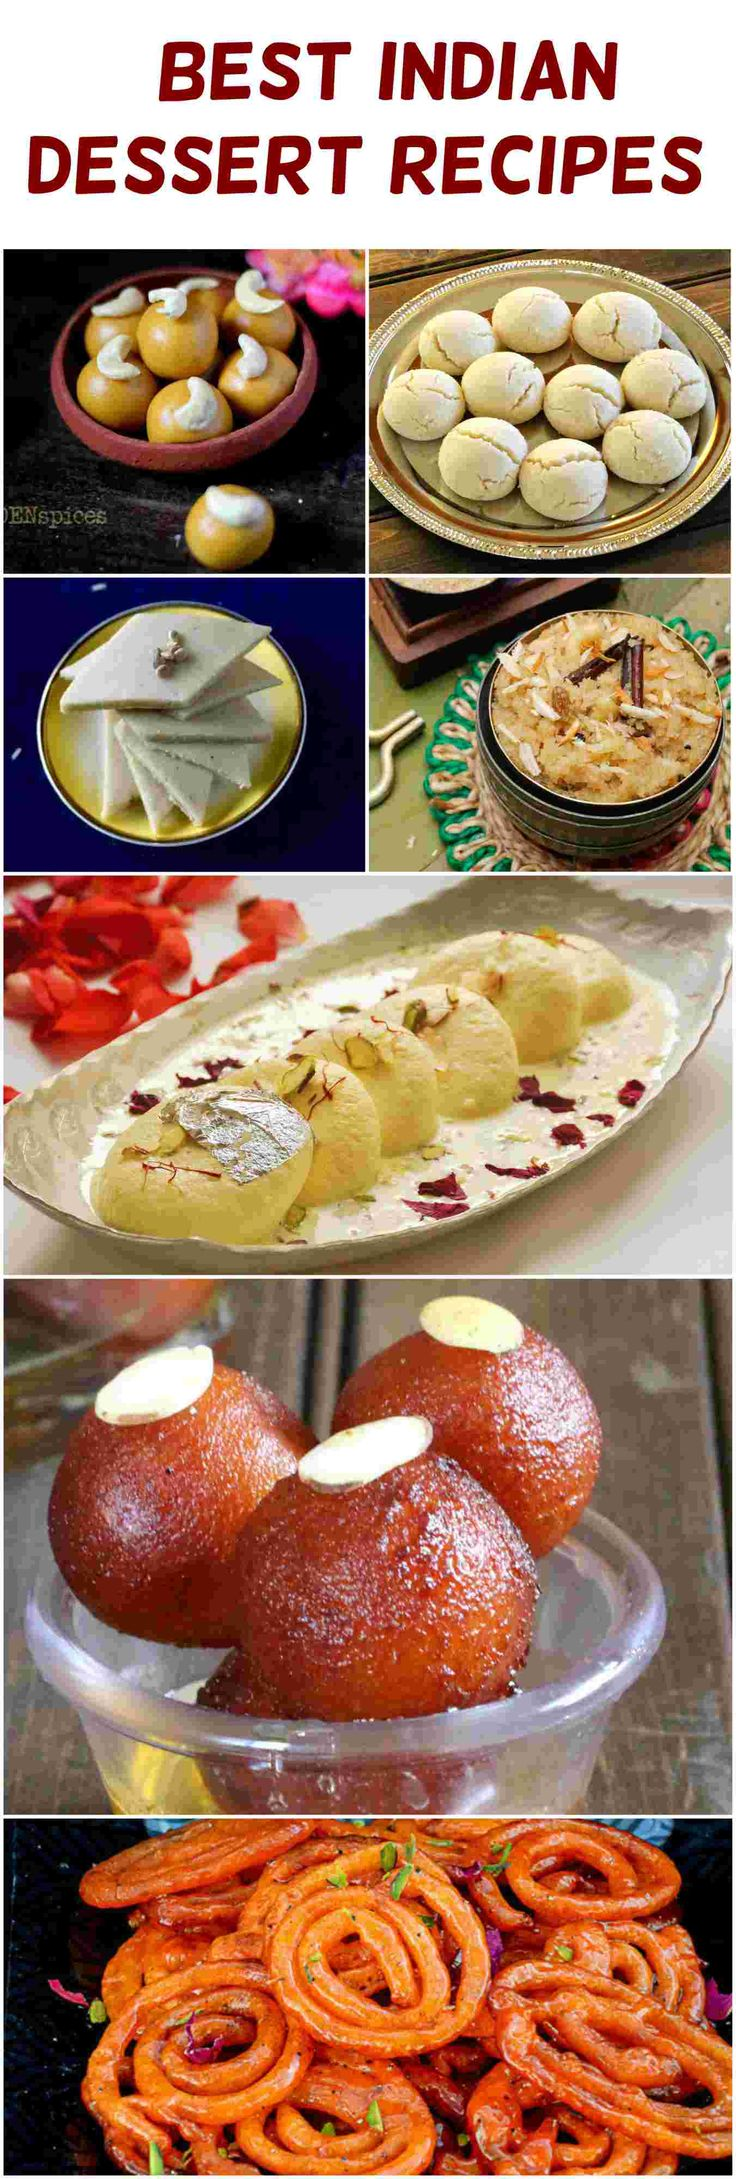 Best Indian Dessert recipes  #festival #Indian #dessert #sweet #recipes #ndtvfood #buzzfeedfood #feedfeed #bhgfood